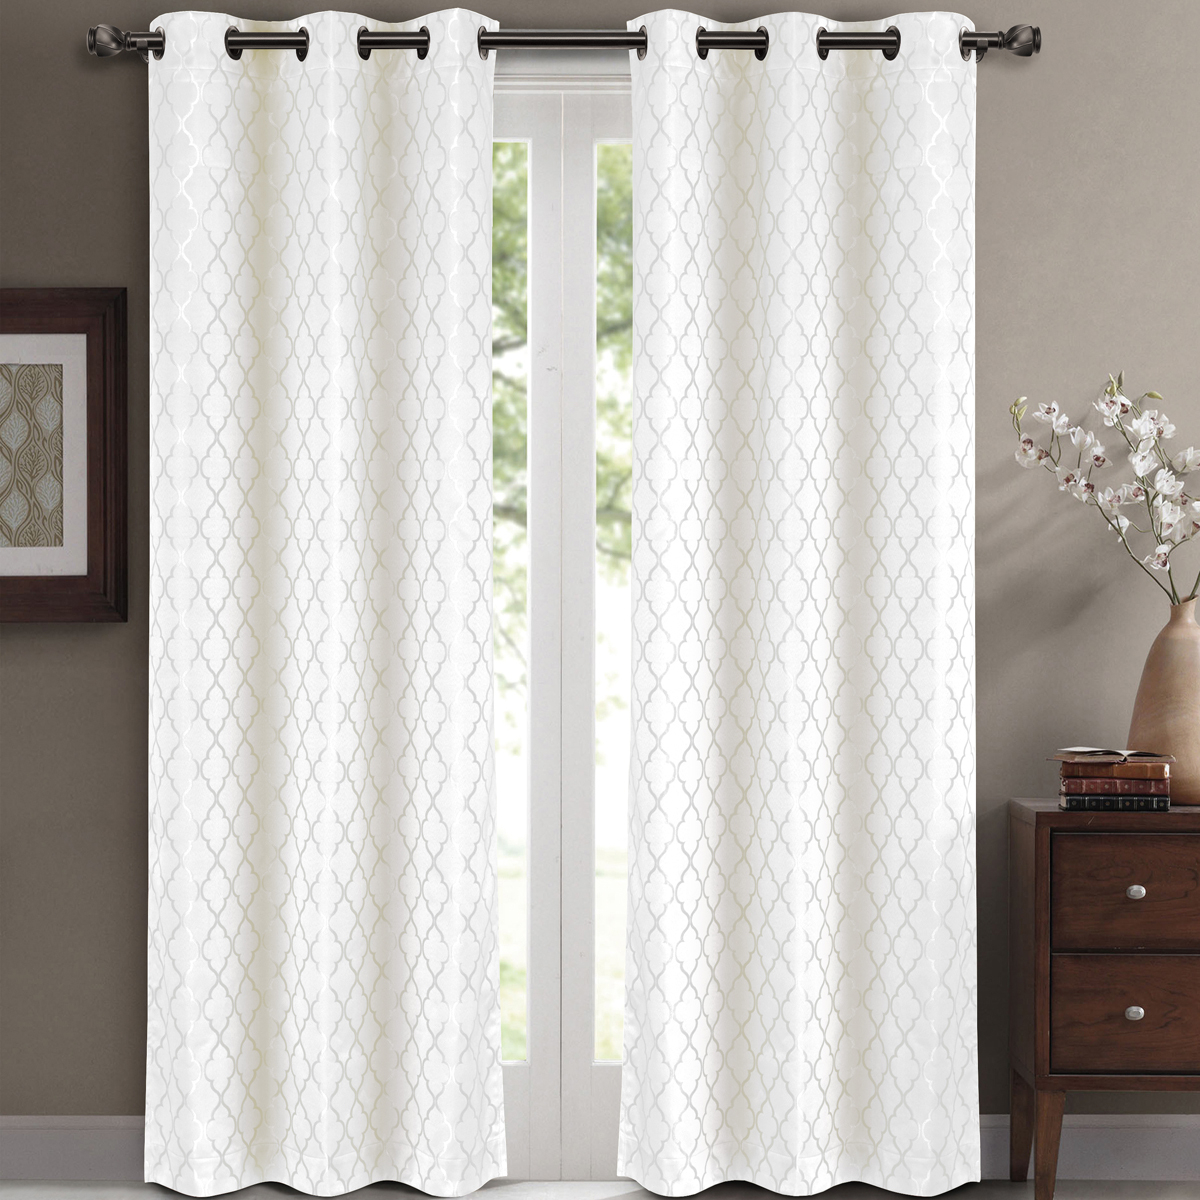 White Blackout Curtains 84 Grommet | Flisol Home Within Solid Insulated Thermal Blackout Long Length Curtain Panel Pairs (View 30 of 30)